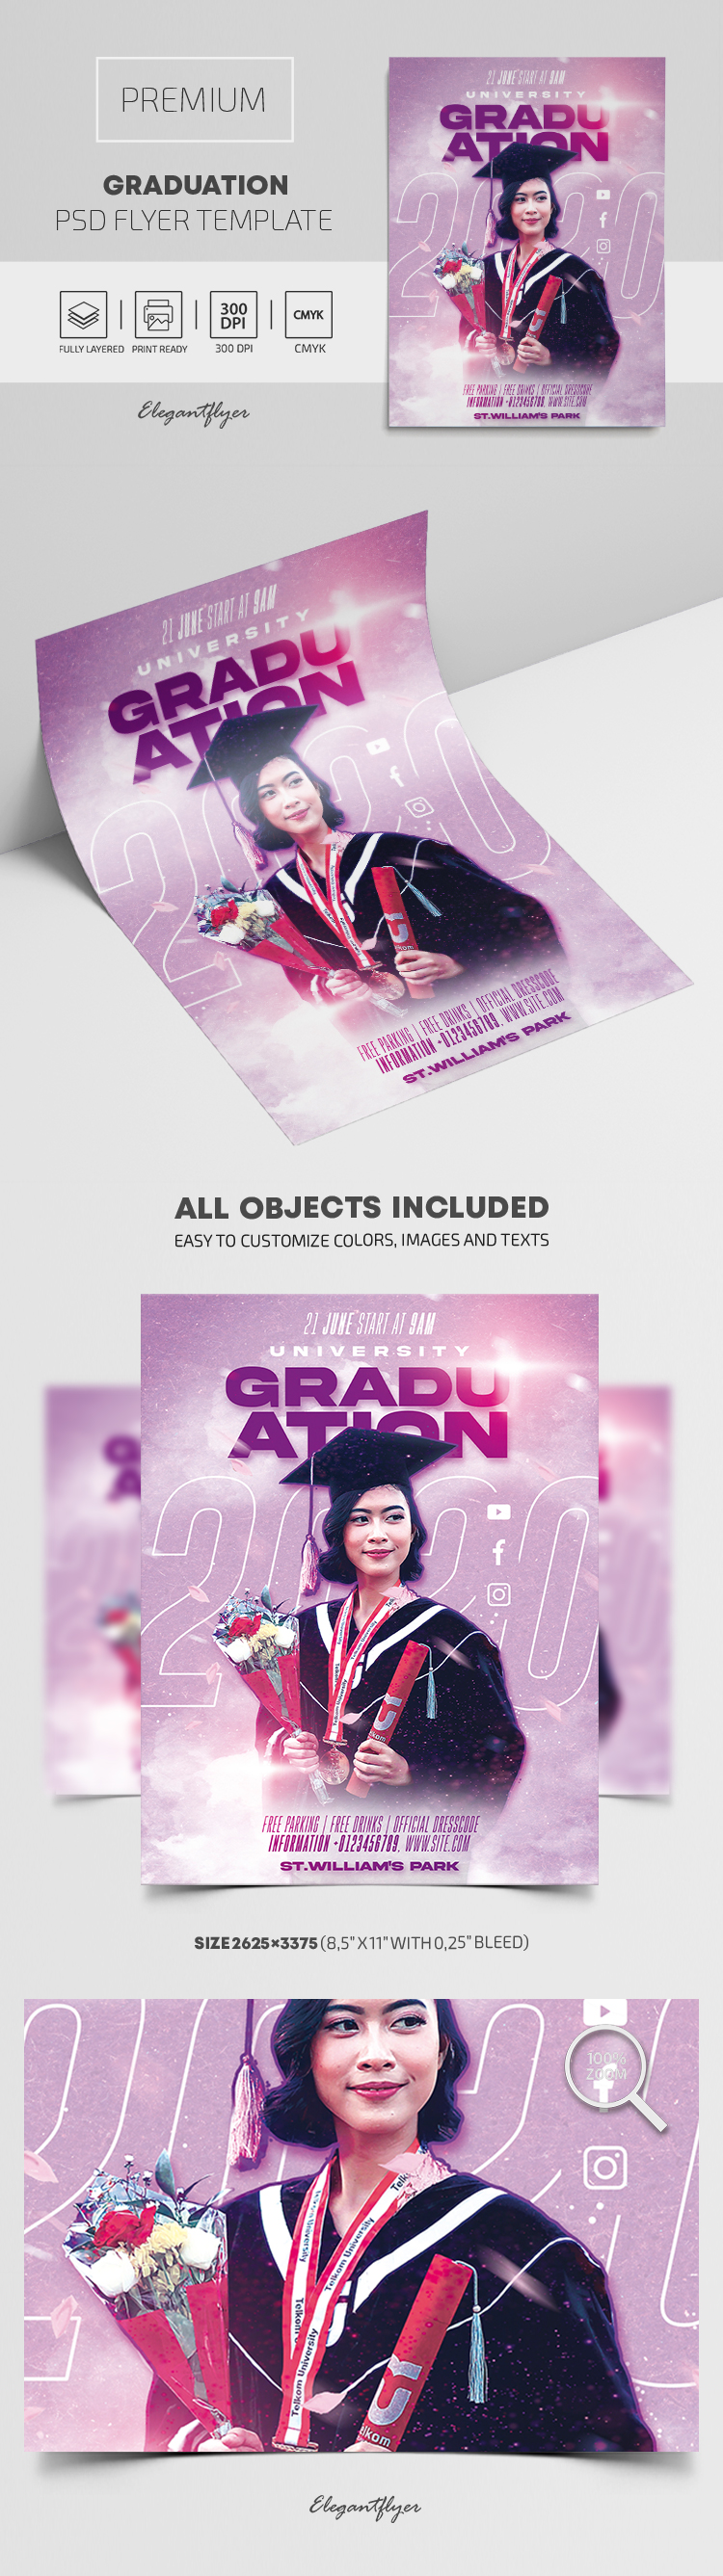 Graduation – Premium PSD Flyer Template